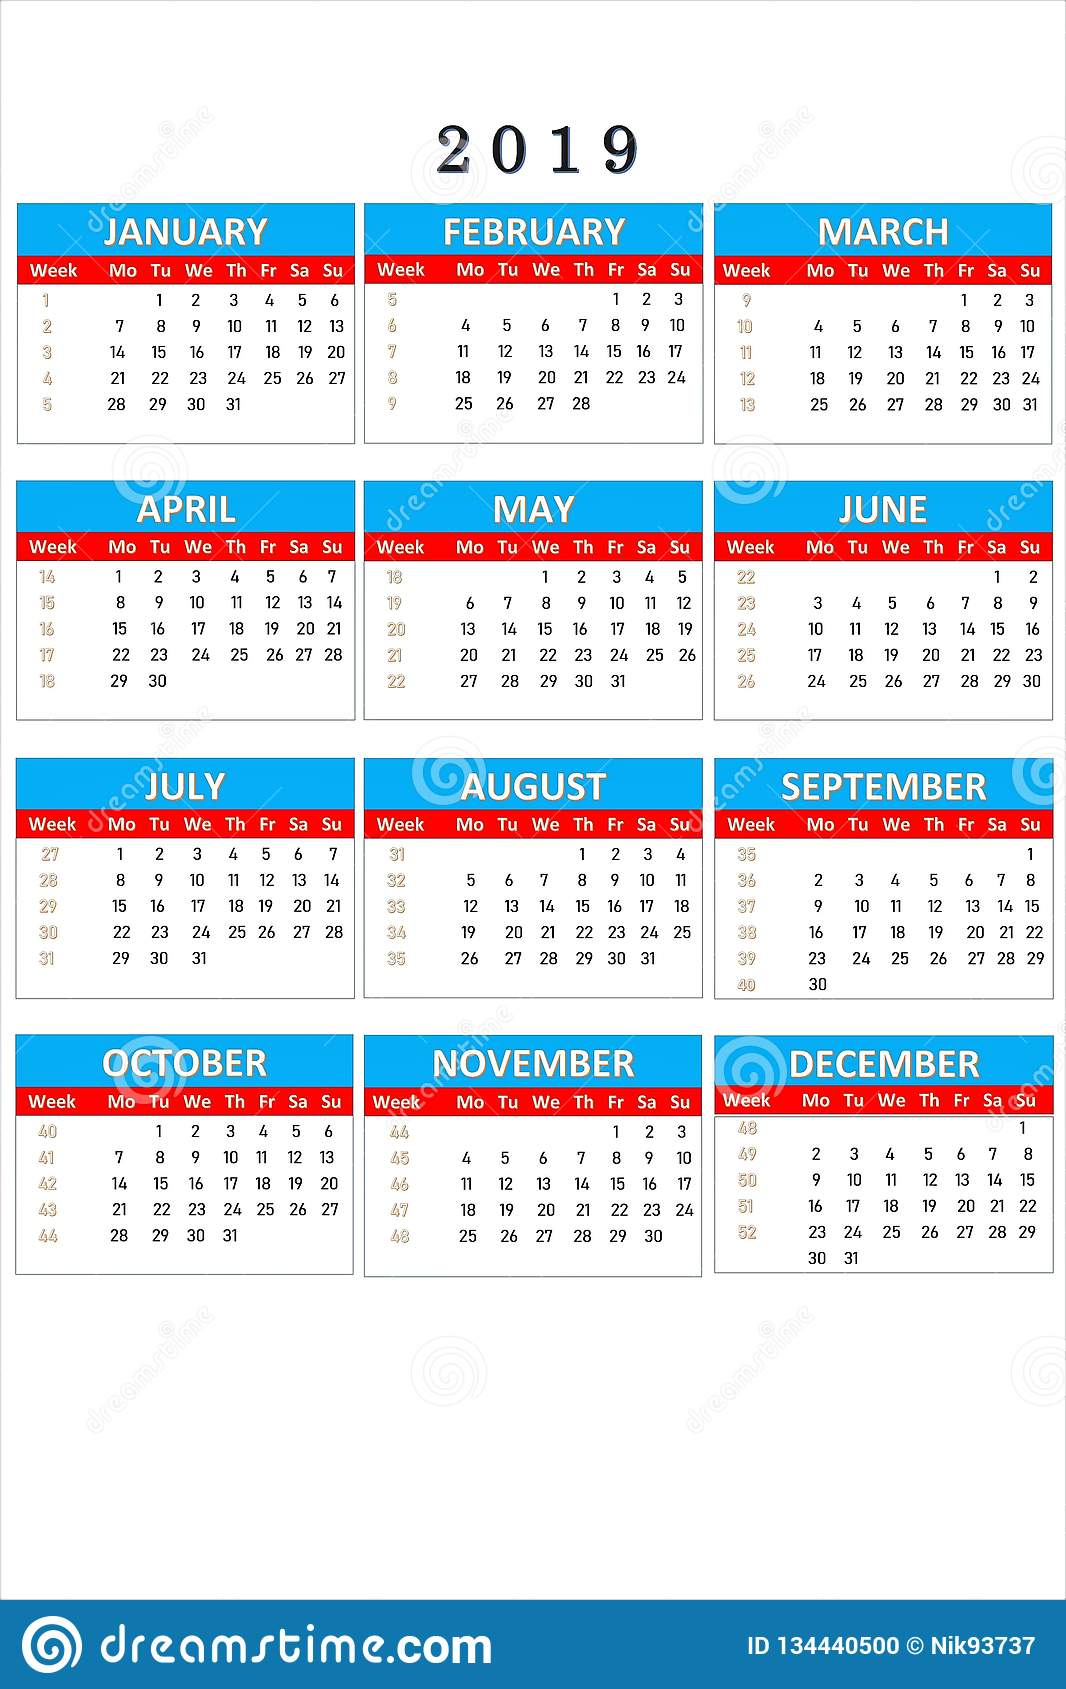 Work Calendar 2019 Calendar For 2019 For Notes And Office Work. Calendar Is Your